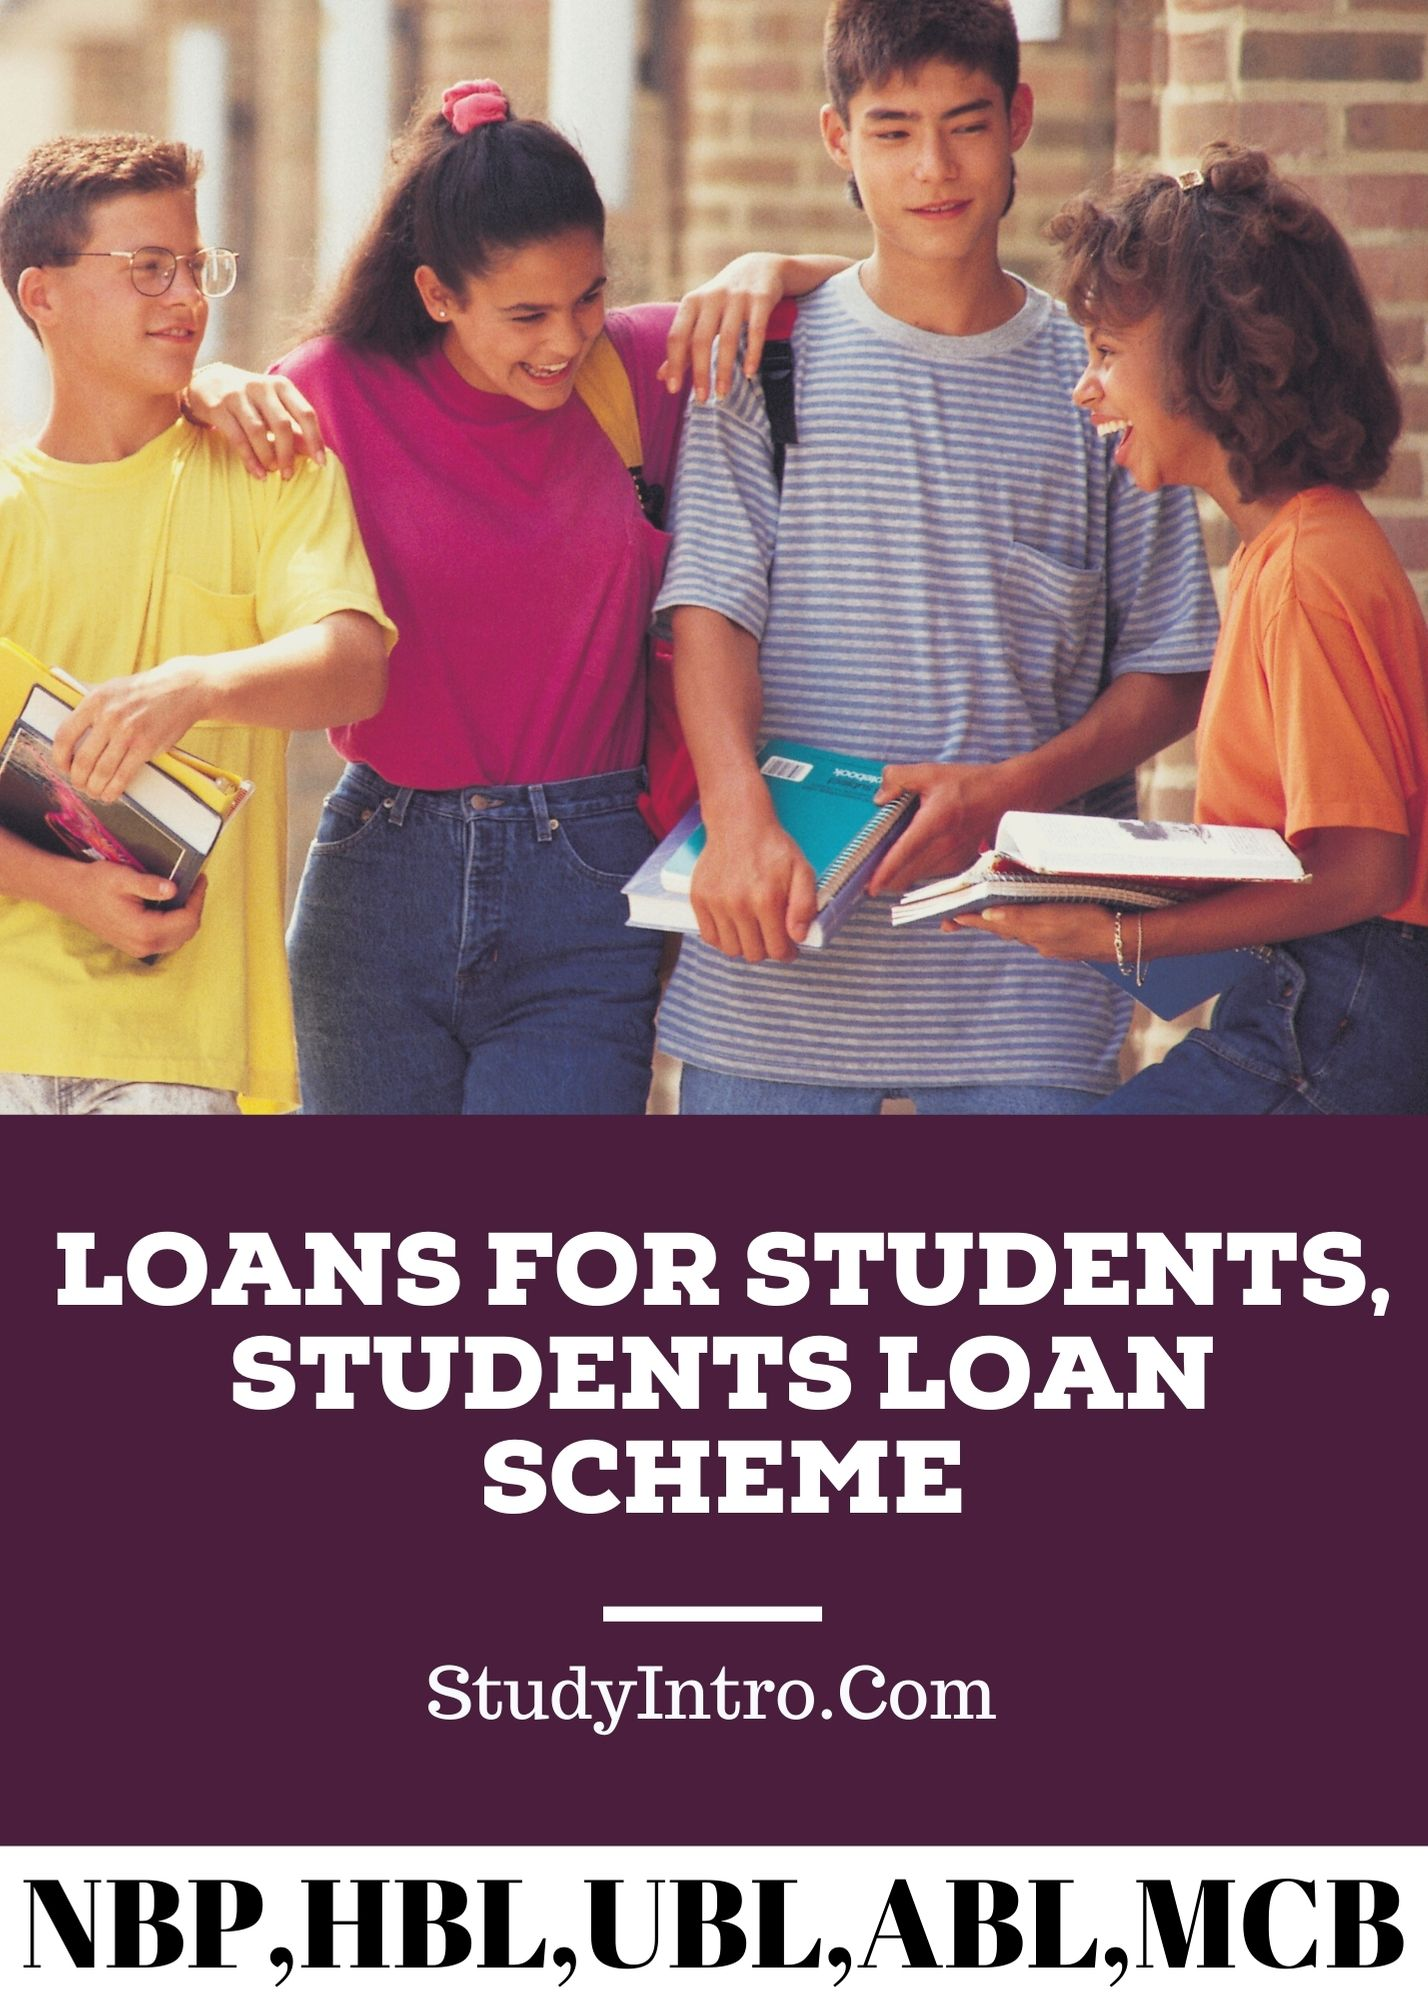 Loans for Students, Students Loan Scheme 2021